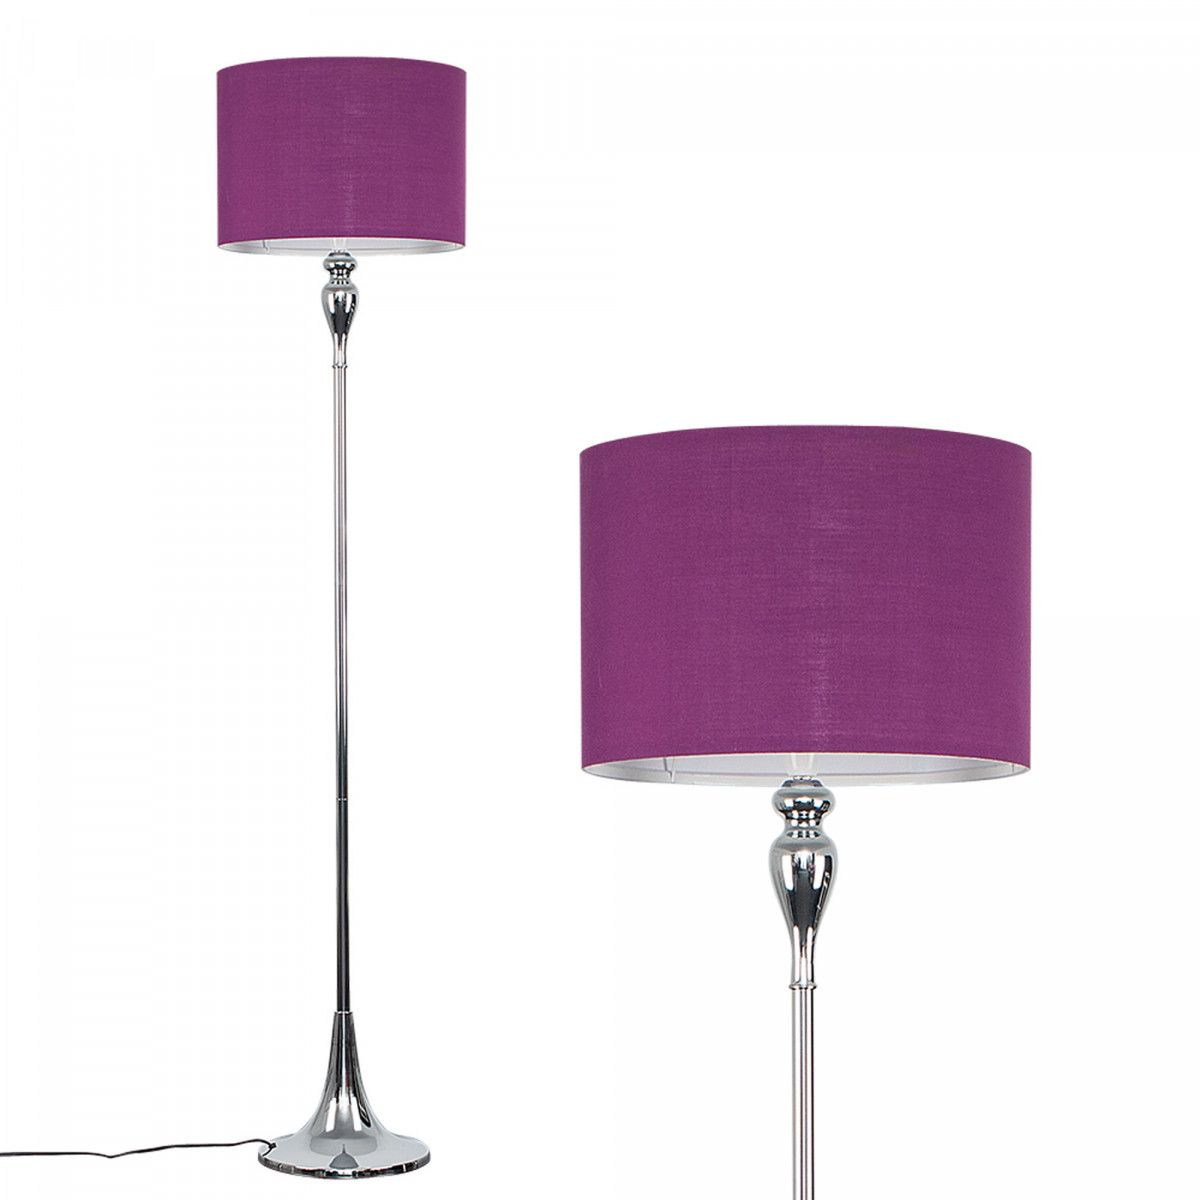 Faulkner chrome floor lamp with purple shade iconic lights floor faulkner chrome floor lamp with purple shade aloadofball Gallery